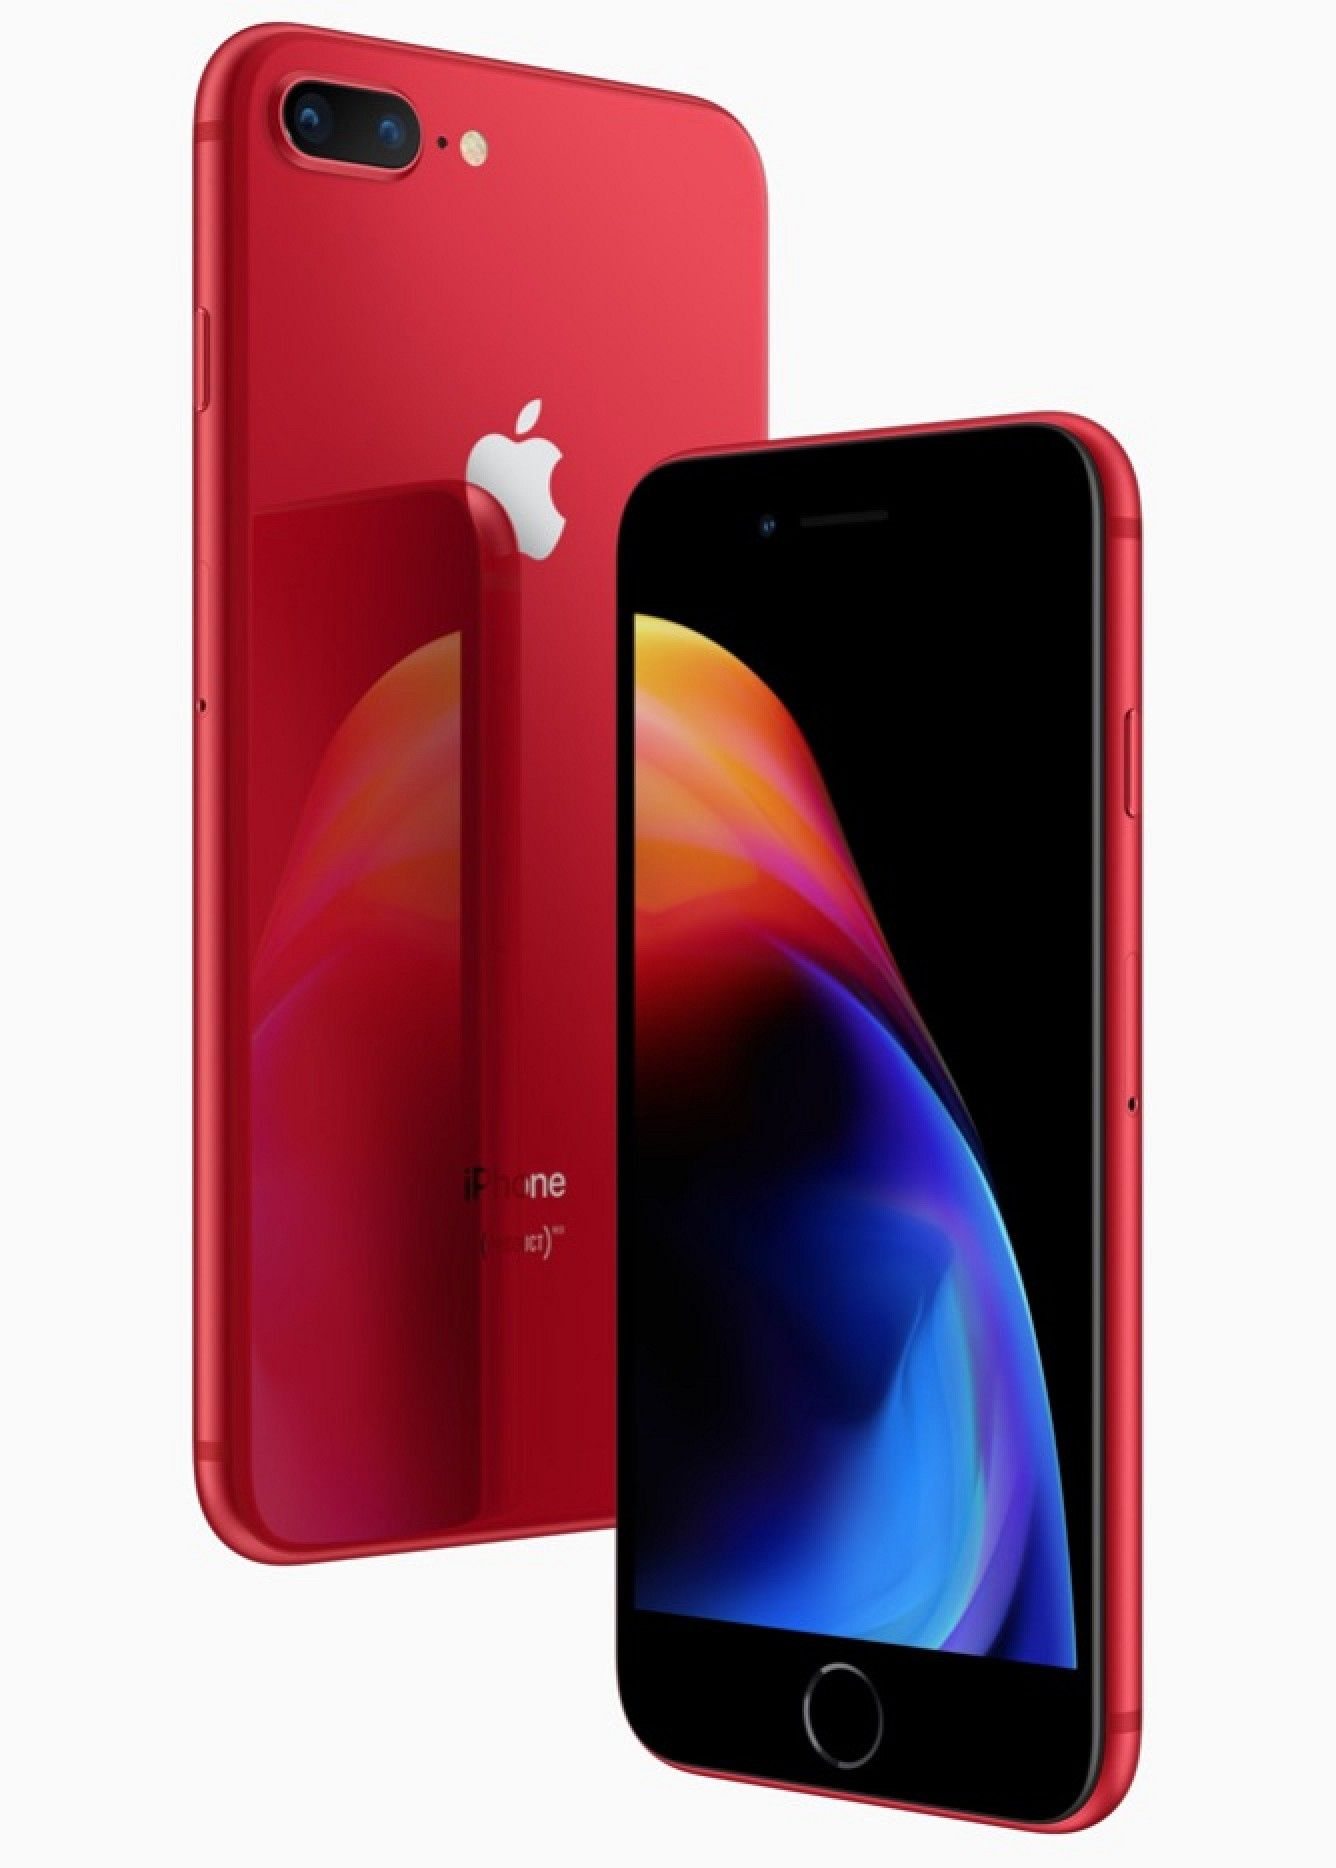 Apple Introduces Product Red Edition Iphone 8 And Iphone 8 Plus Available To Order April 10 Iphone 8 Plus Iphone Boost Mobile